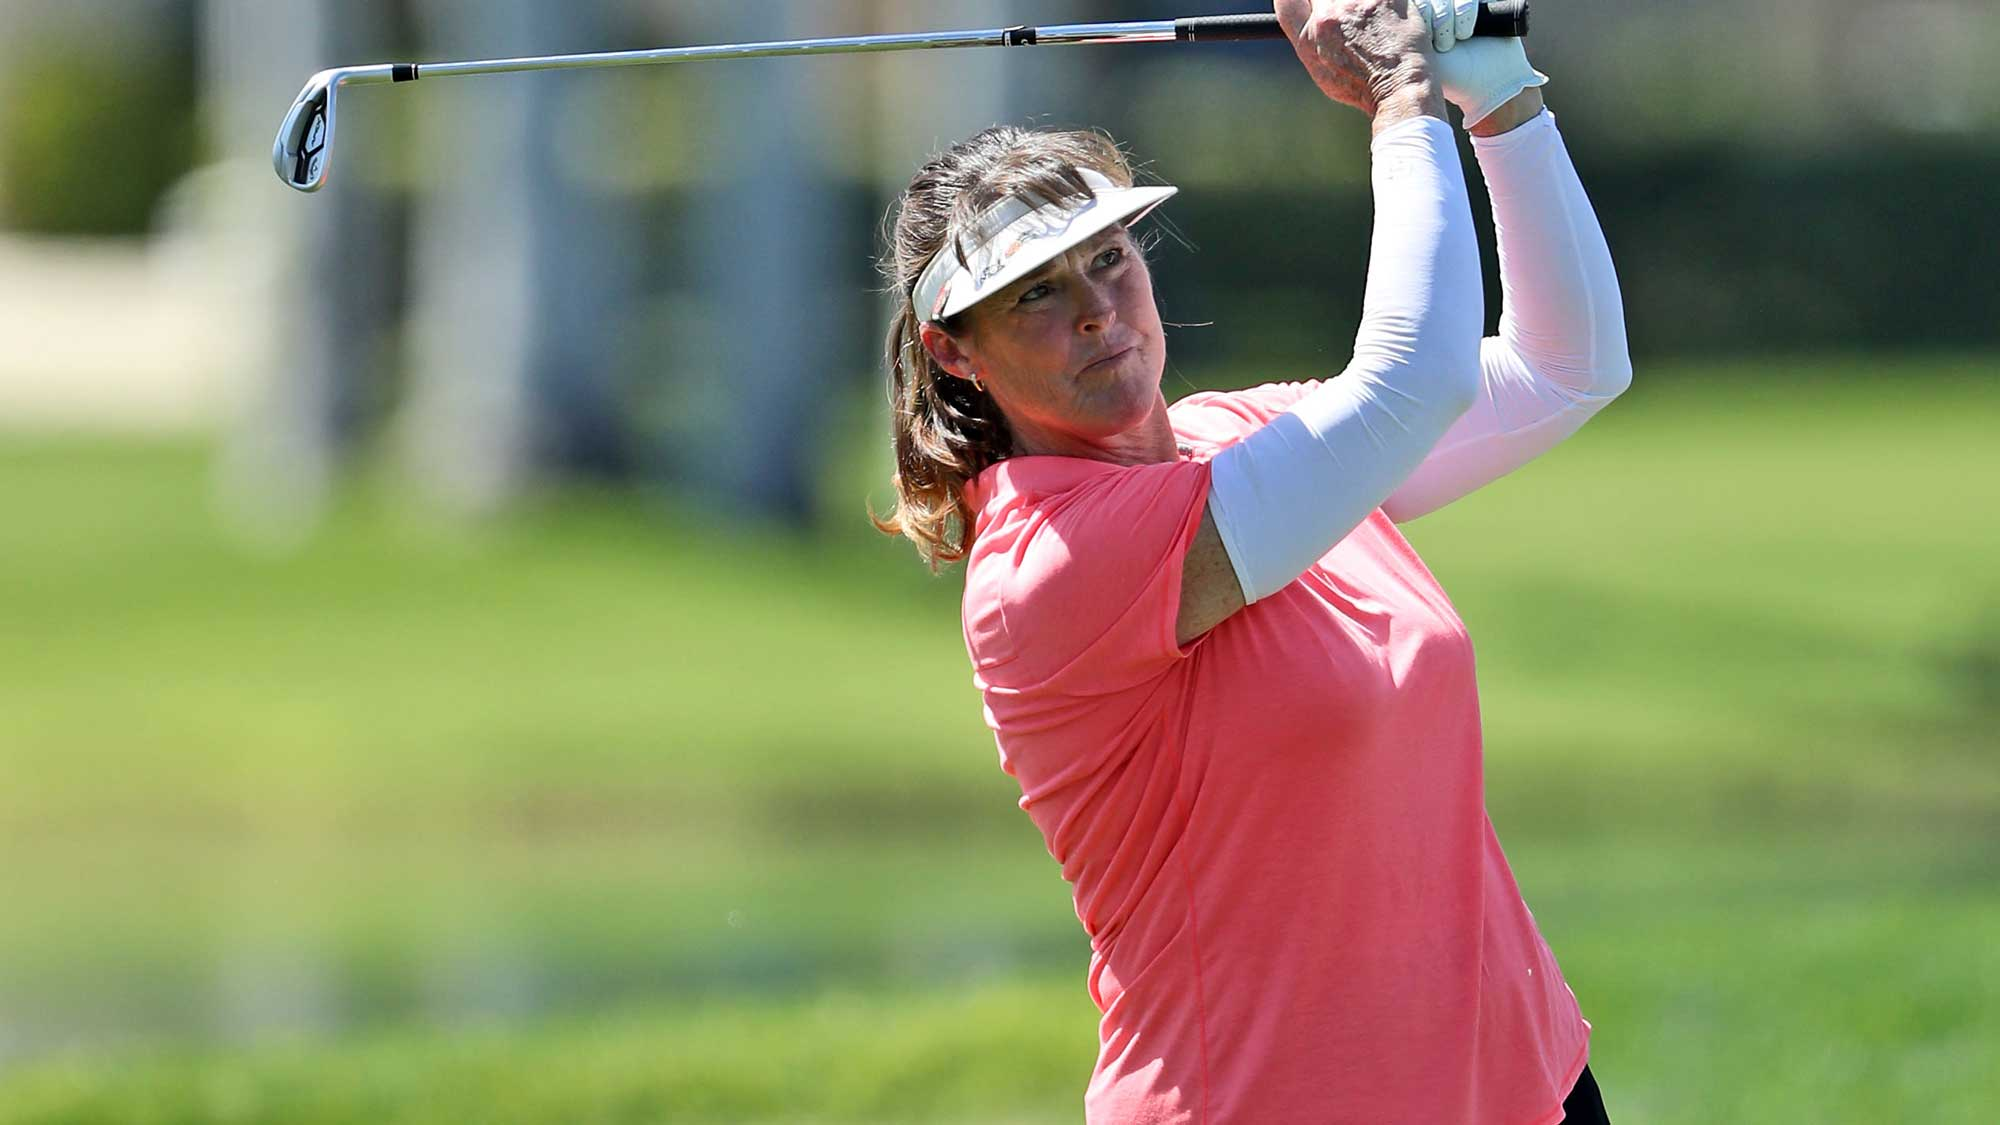 Donna Andrews of the United States plays her third shot on the par 5, 18th hole during the second round of the 2018 ANA Inspiration